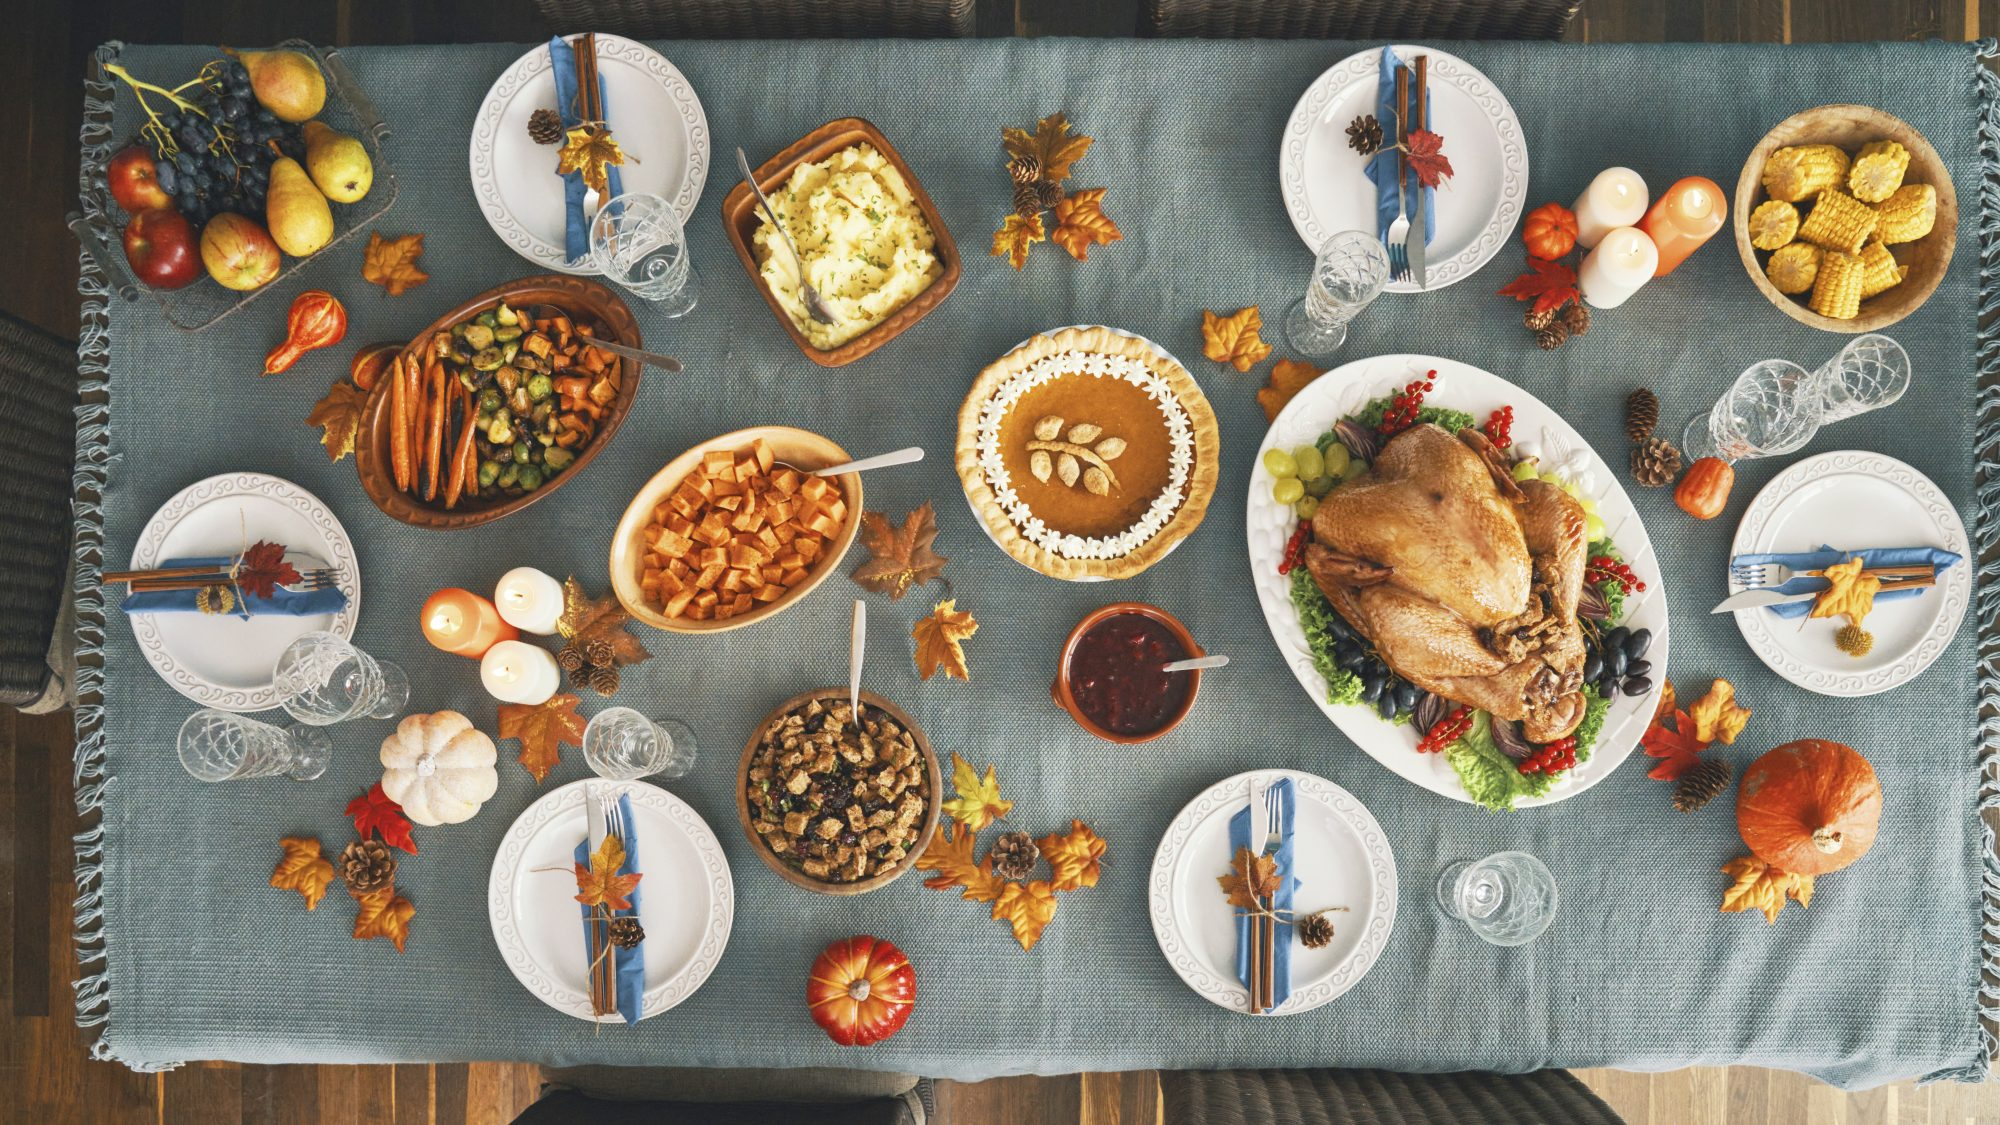 Thanksgiving food history - the history of traditional Thanksgiving foods (feast spread)